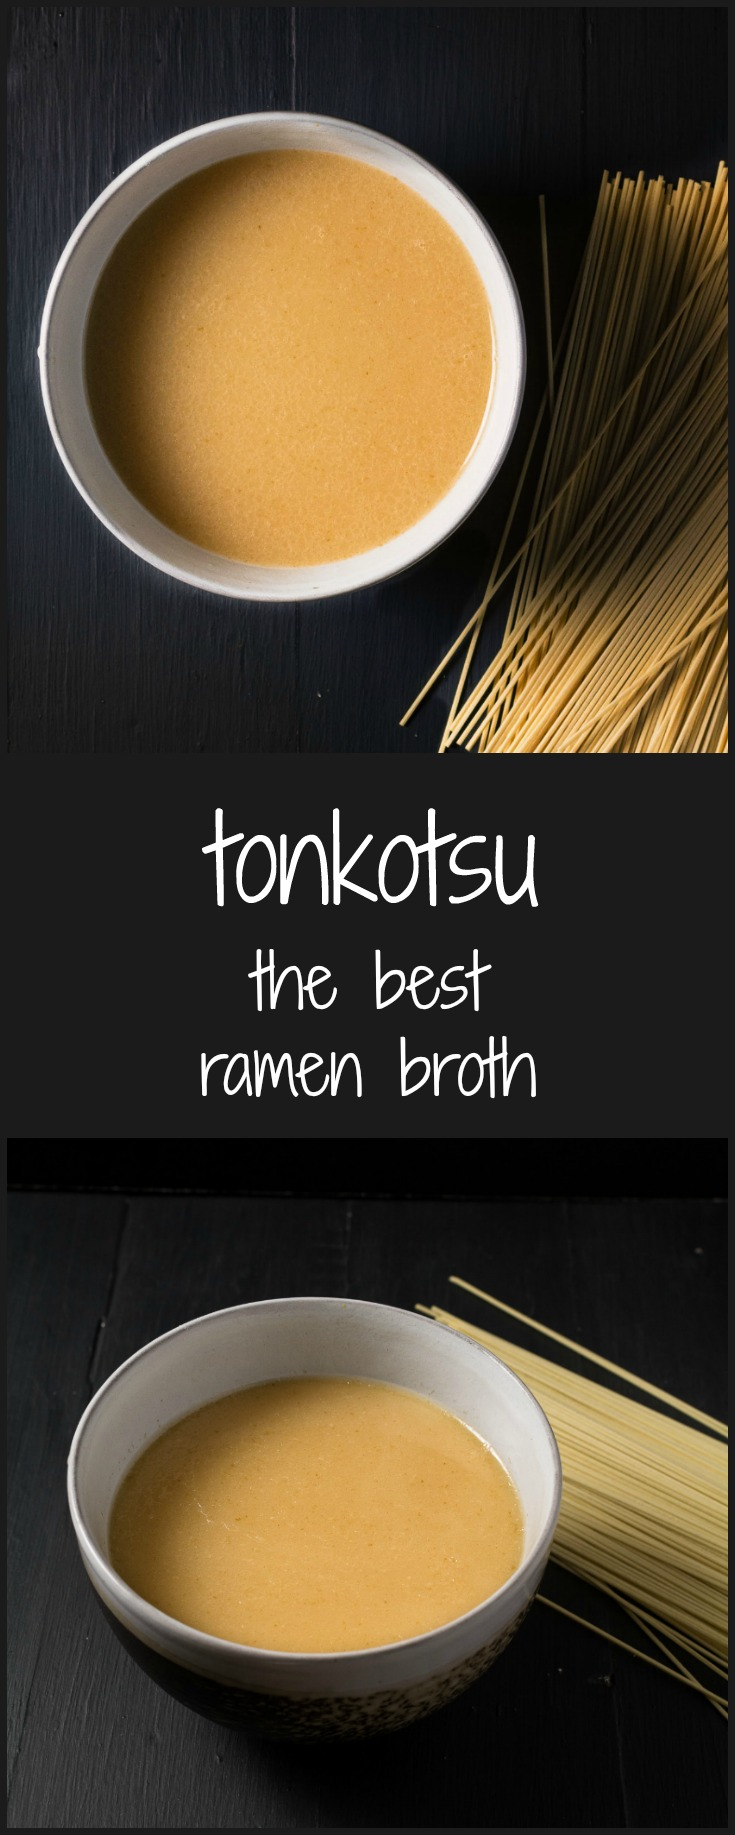 Make this tonkotsu broth for the best ramen ever.